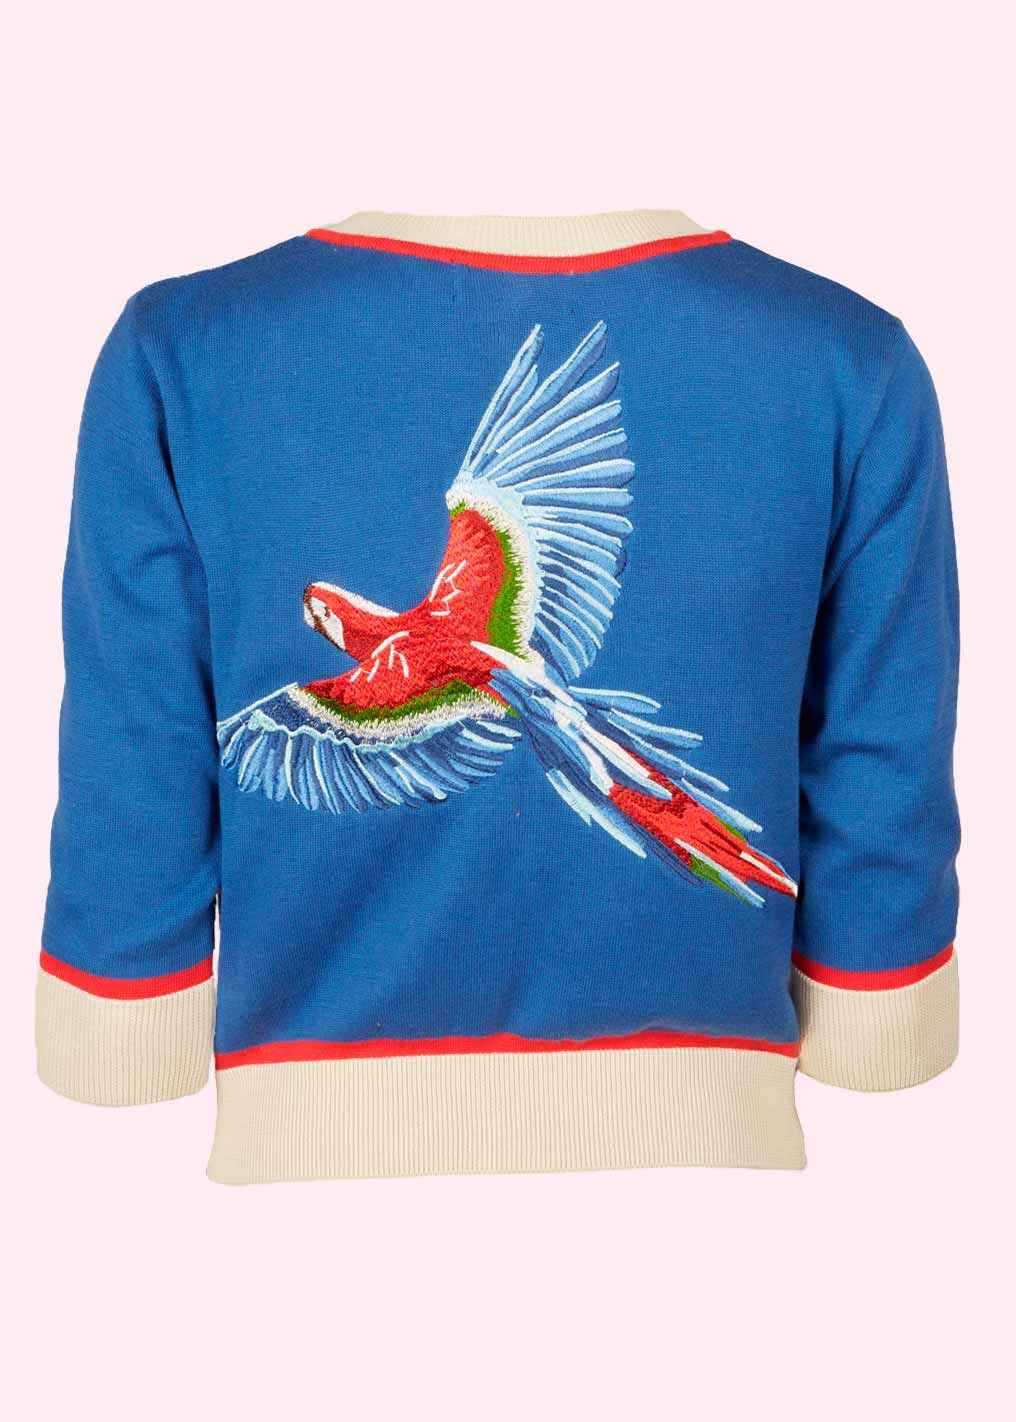 Cardigan with parrot embroidery